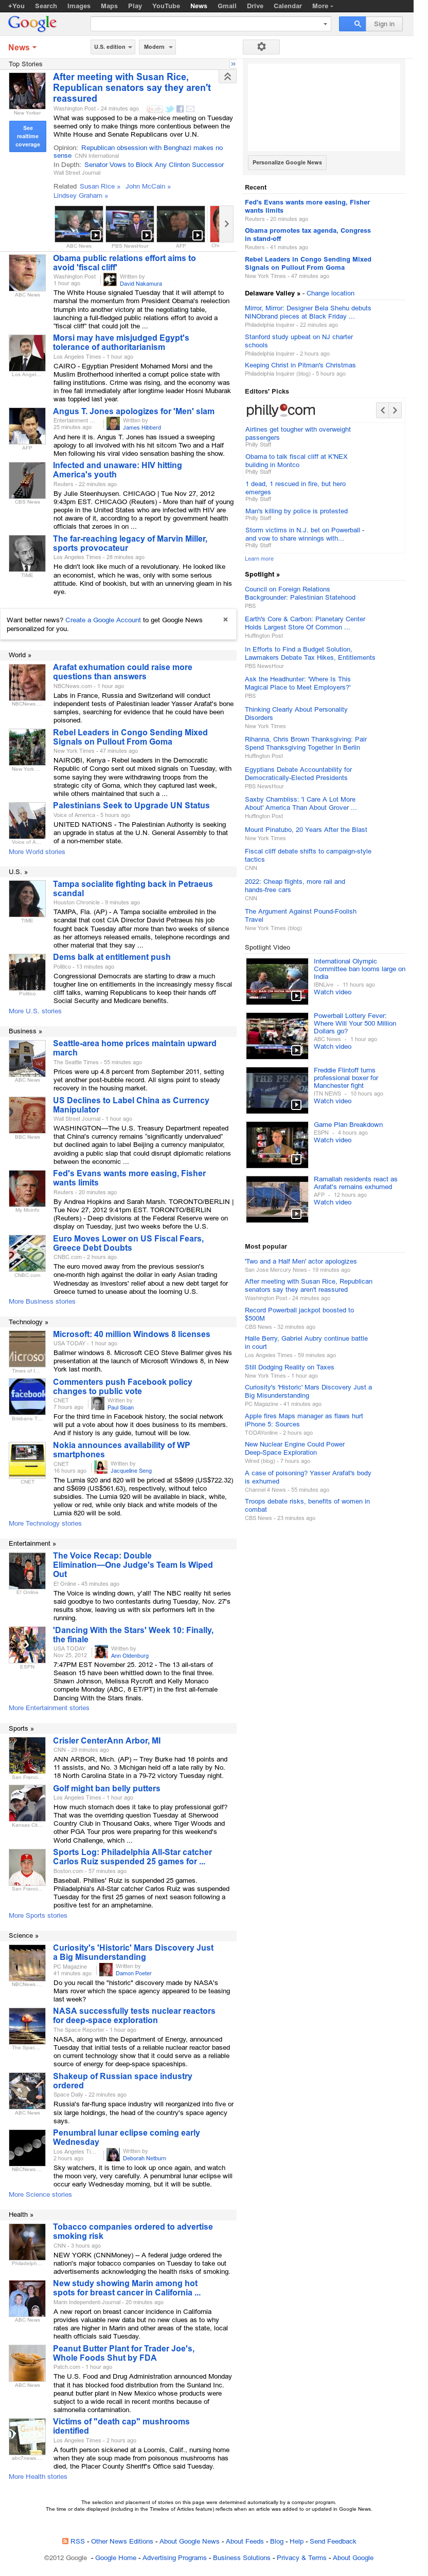 Google News at Wednesday Nov. 28, 2012, 3:15 a.m. UTC